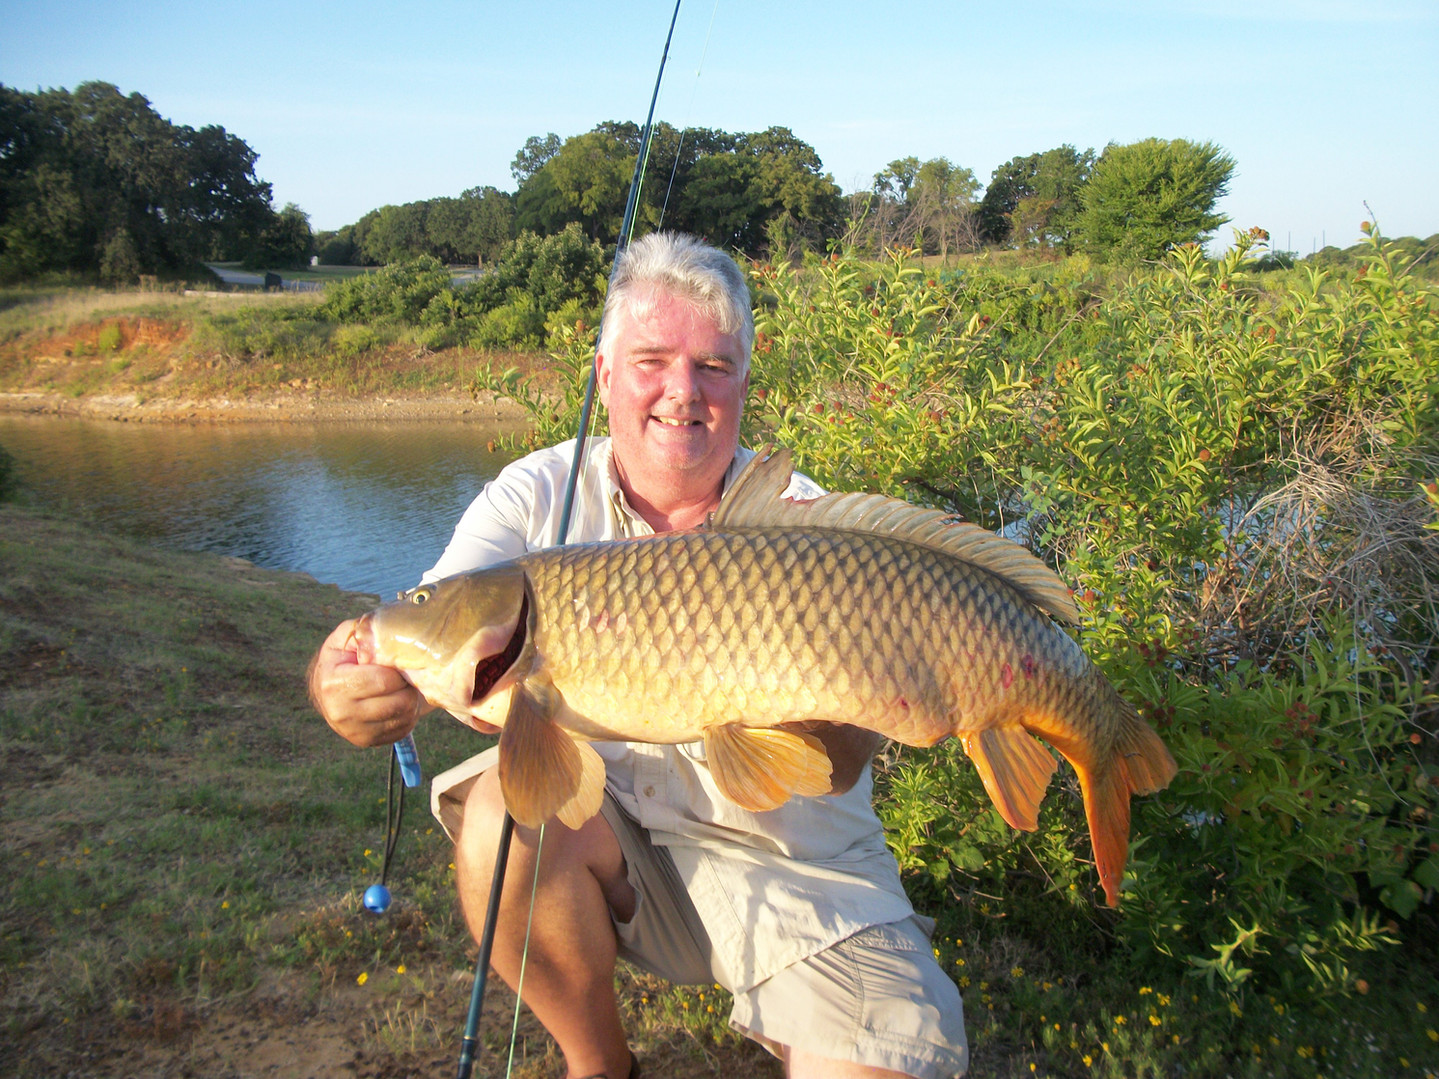 Texas Fly Fishing Catch and Release State Record Common Carp  - 34.25 inches